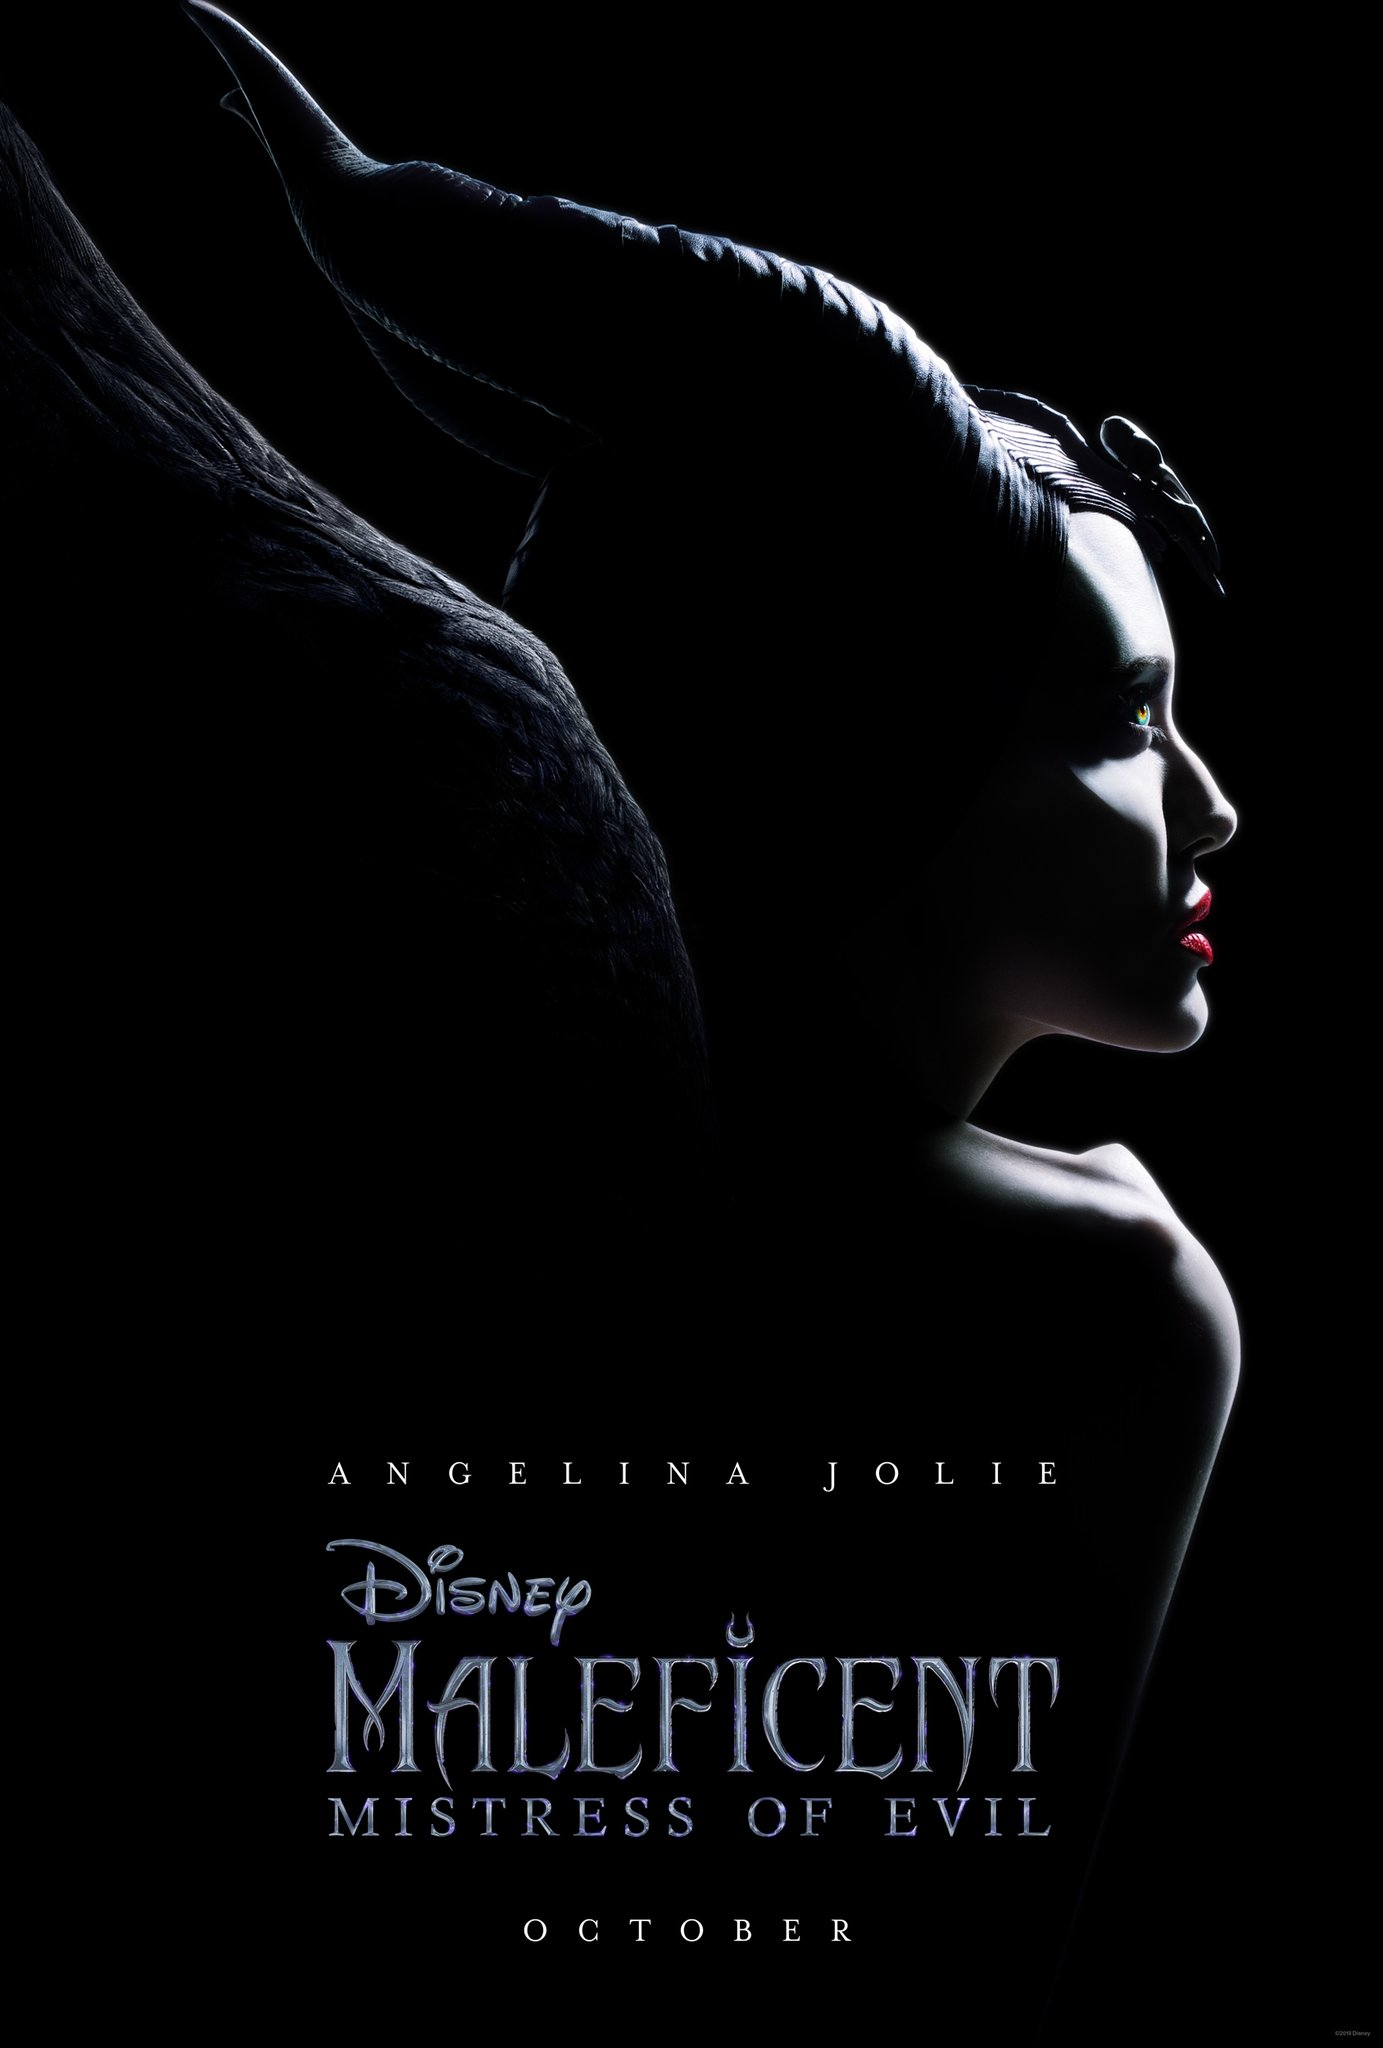 Maleficent 2 Teaser Trailer For Mistress Of Evil Cosmic